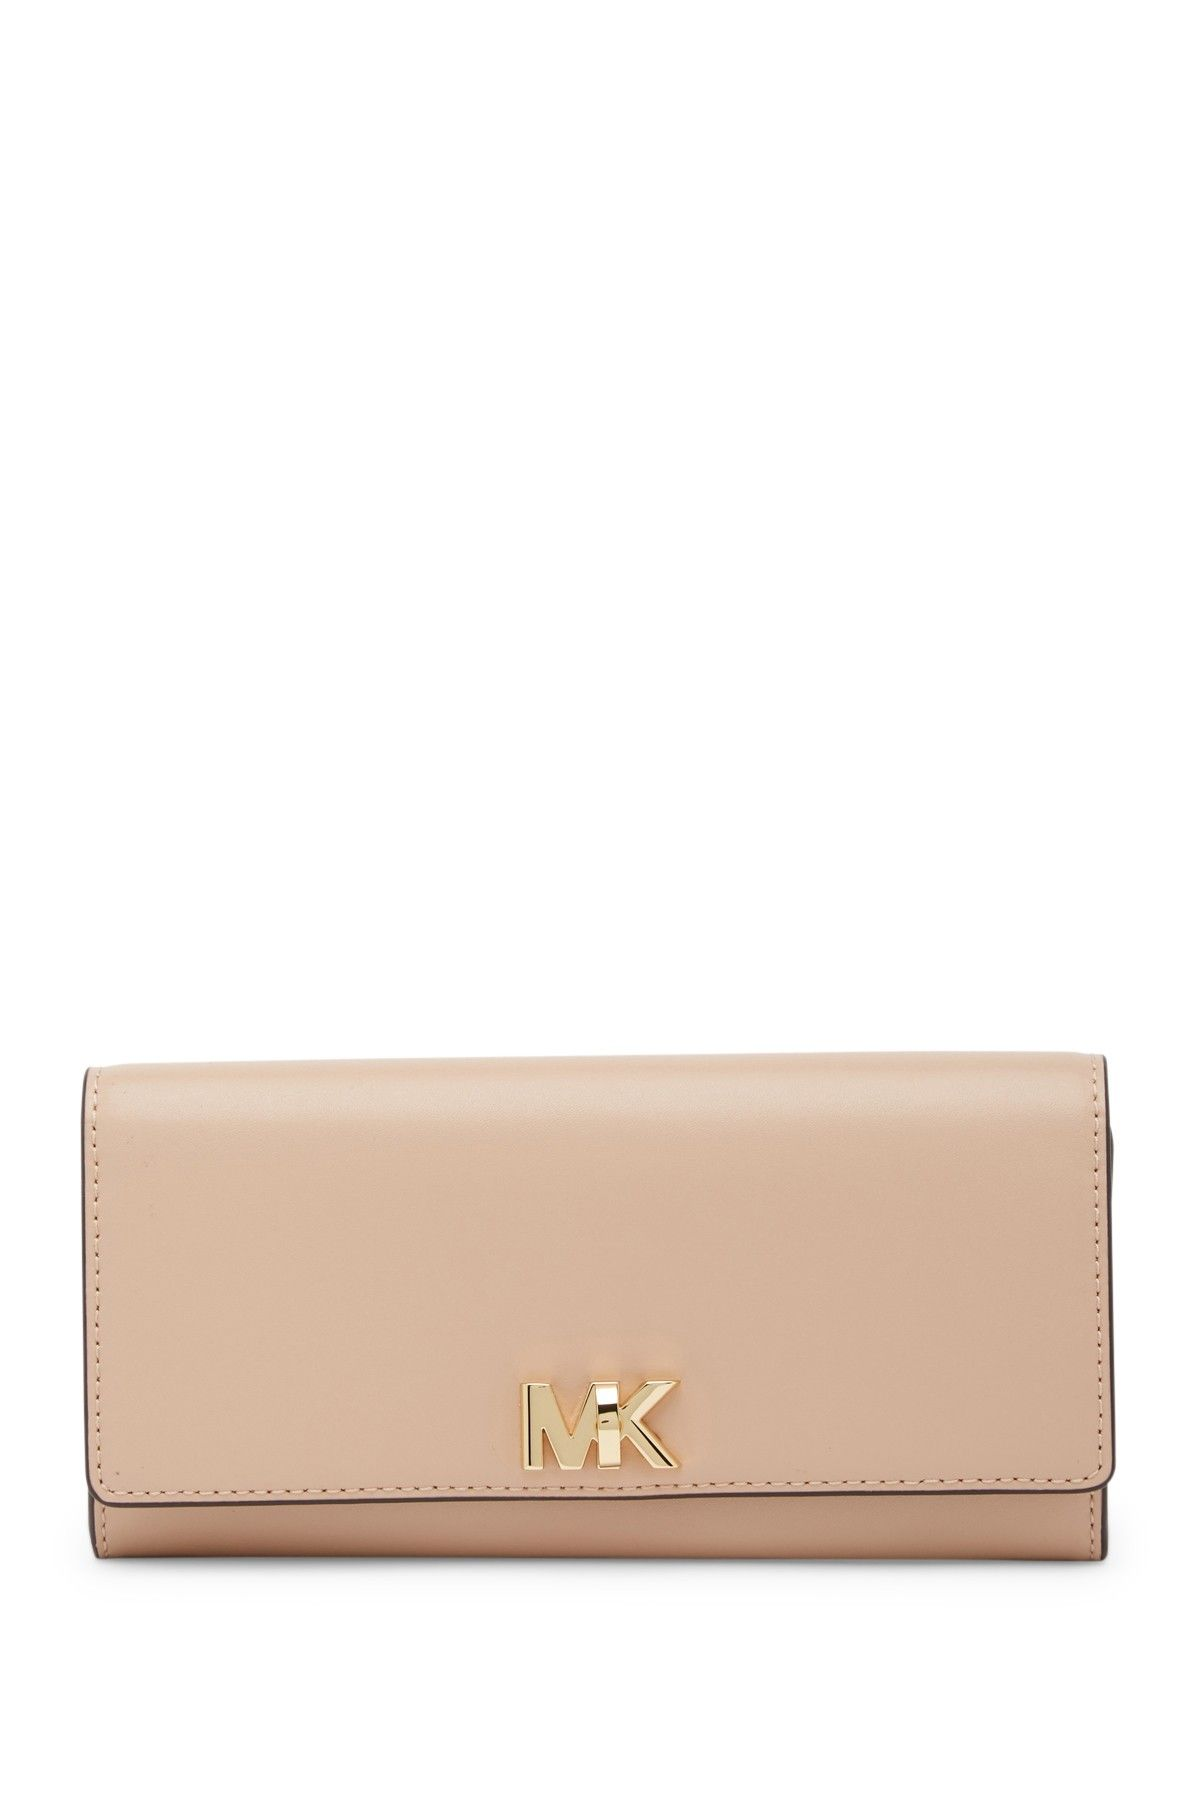 beb79e1ab1b5 King Leather Carryall Wallet by Michael Kors on  nordstrom rack ...